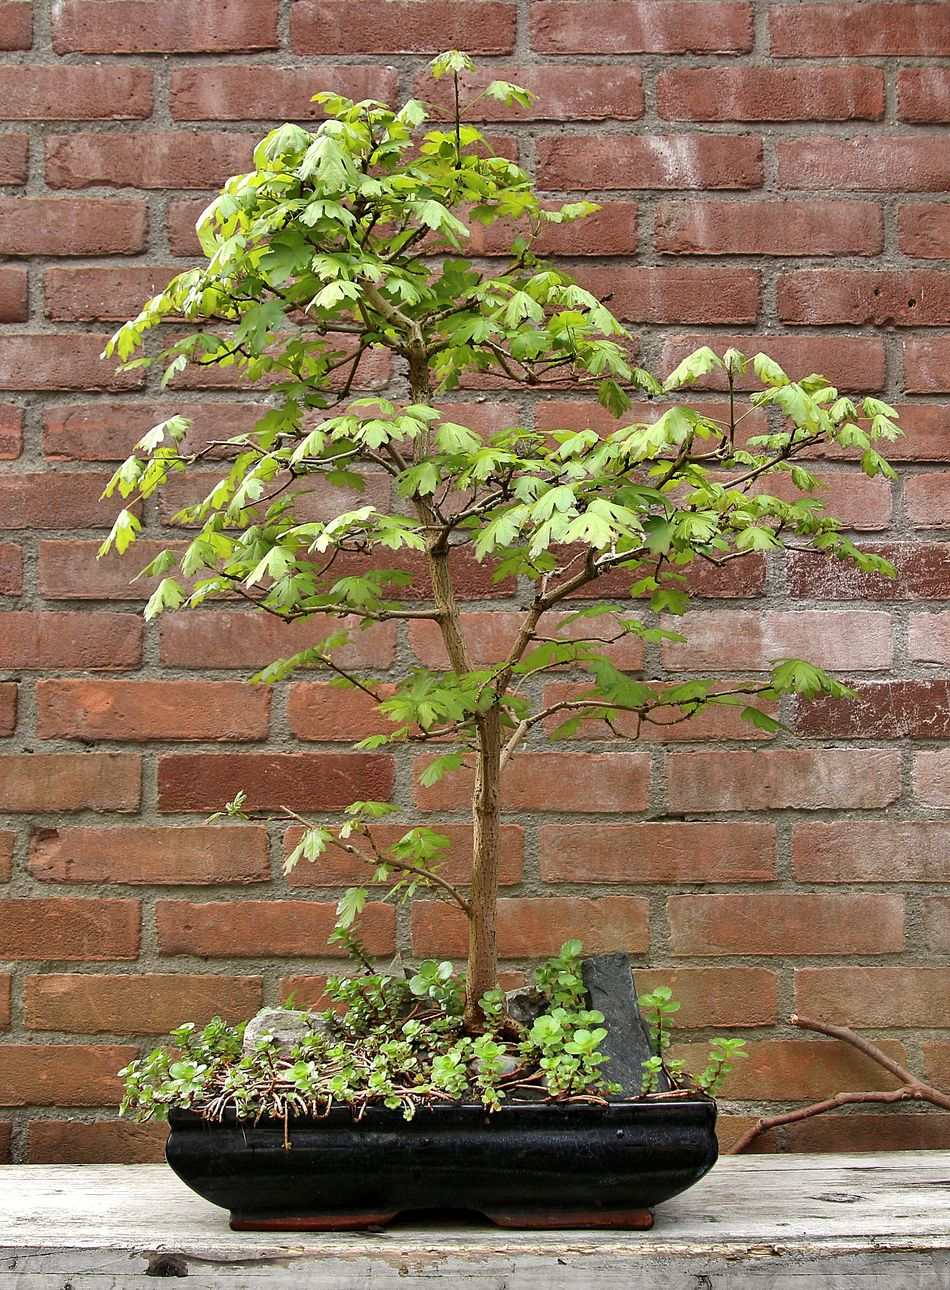 Acer Campastre bonsai Plant Growth Wall - Building Feature Growing No People Ivy Brick Wall Green Color Outdoors Day Nature Leaf Architecture Fragility Close-up Window Box Bonsai Eyem Best Shots Acer Tree